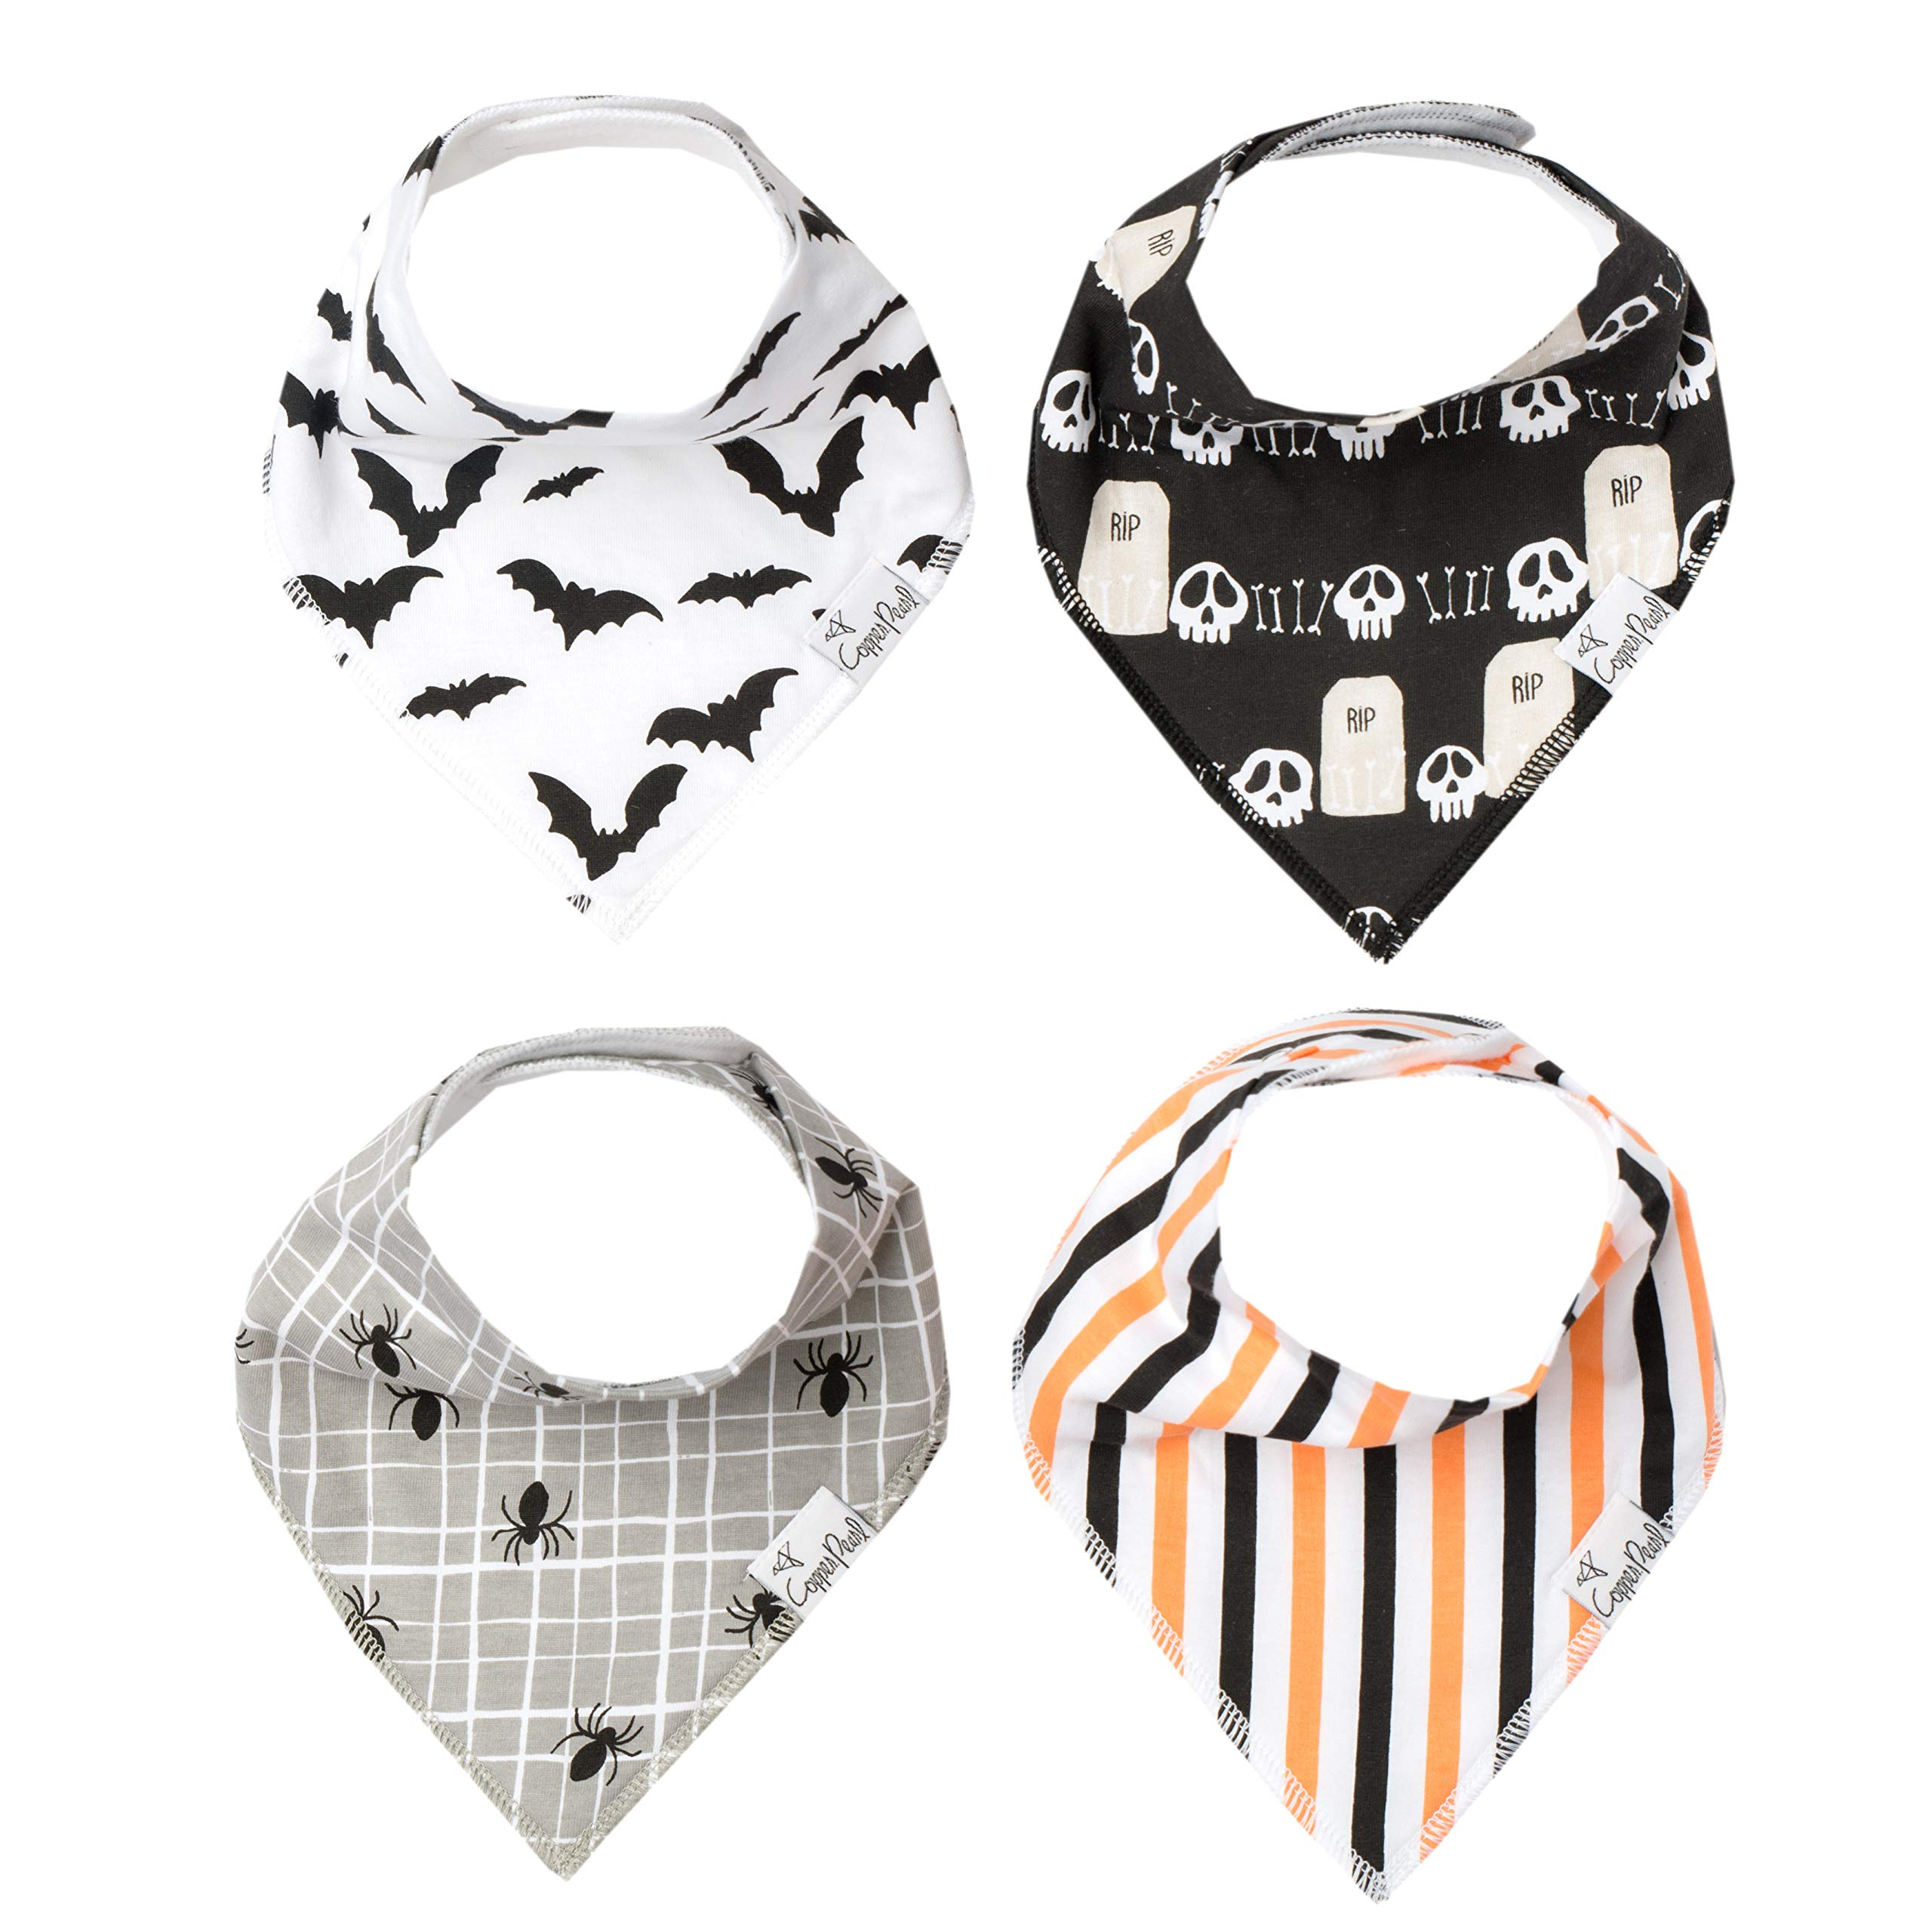 Baby Bandana Drool Bibs for Drooling and Teething 4 Pack Gift Set ''Haunt'' by Copper Pearl by Copper Pearl